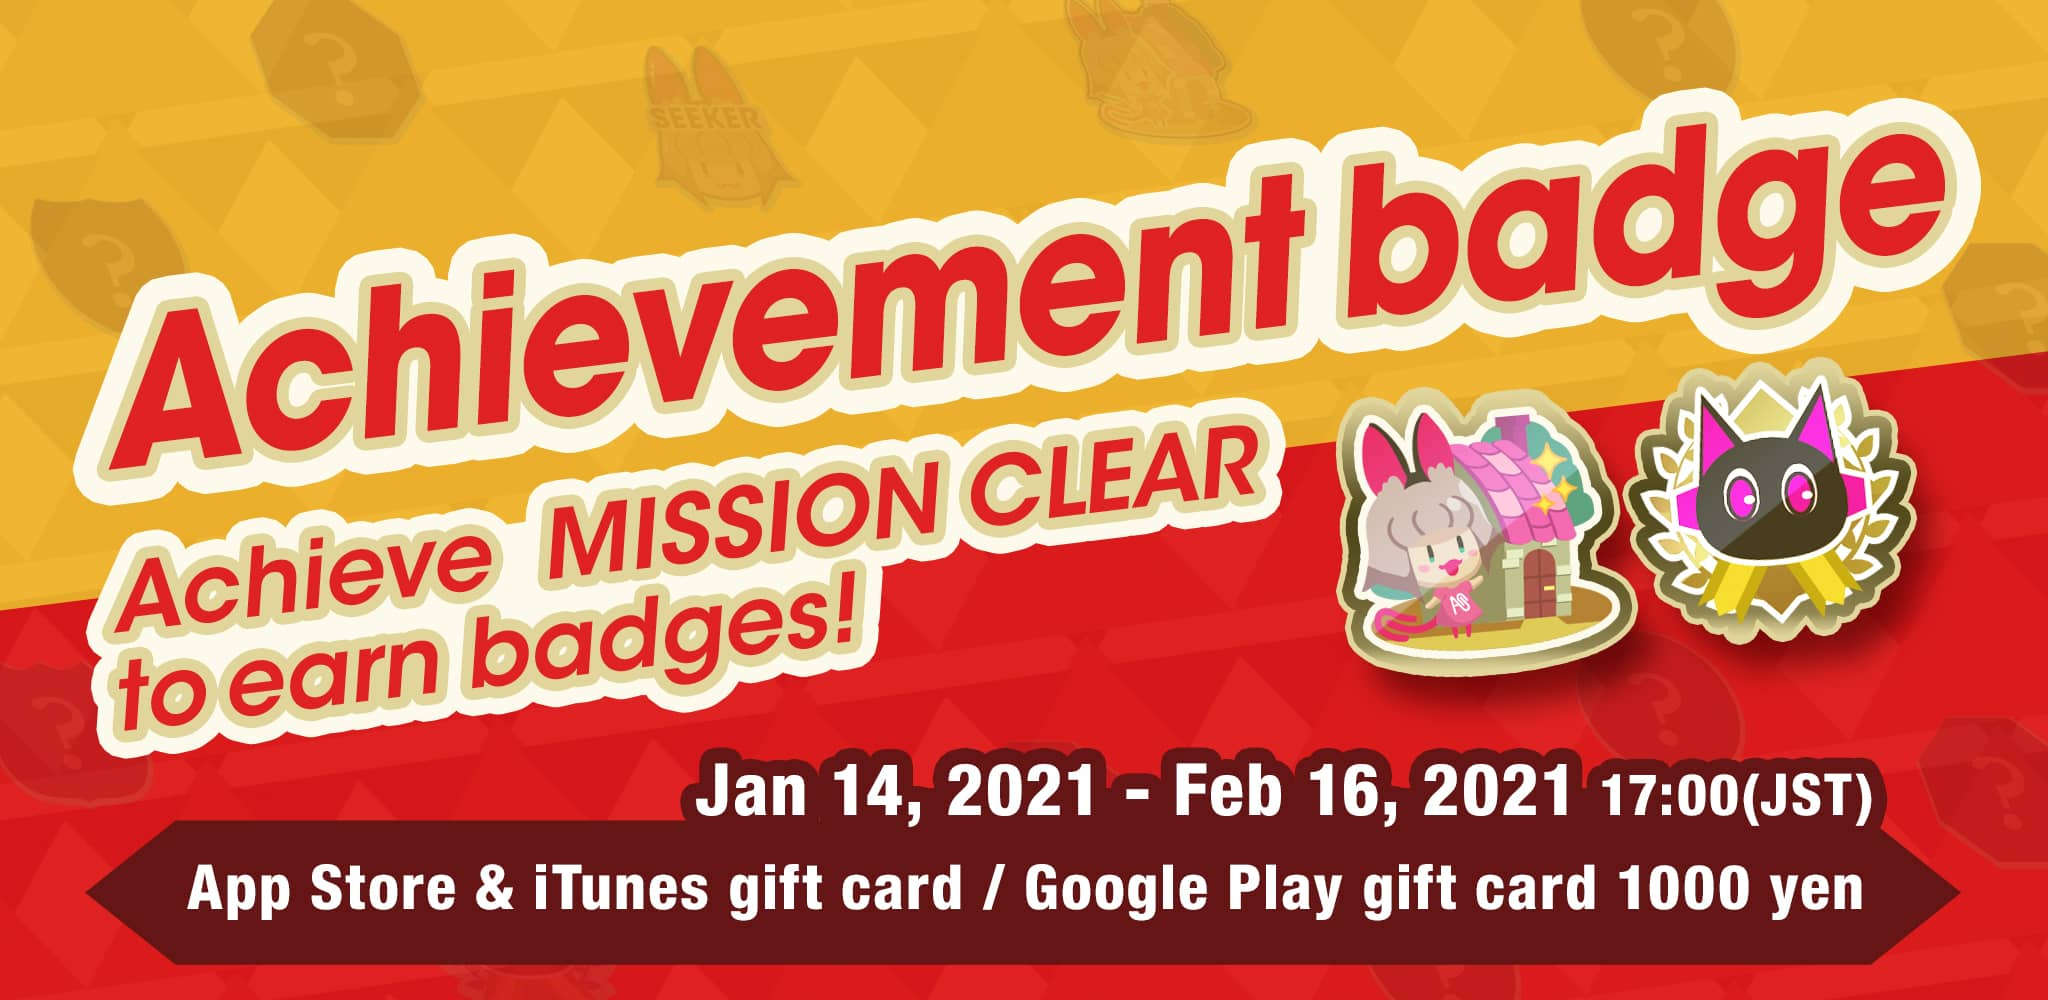 Achievement badge - Achieve MISSION CLEAR to earn badges! Jan 14, 2021 - Feb 16, 2021 17:00(JST) App Store & iTunes gift card<br>/Google Play gift card 1000 yen